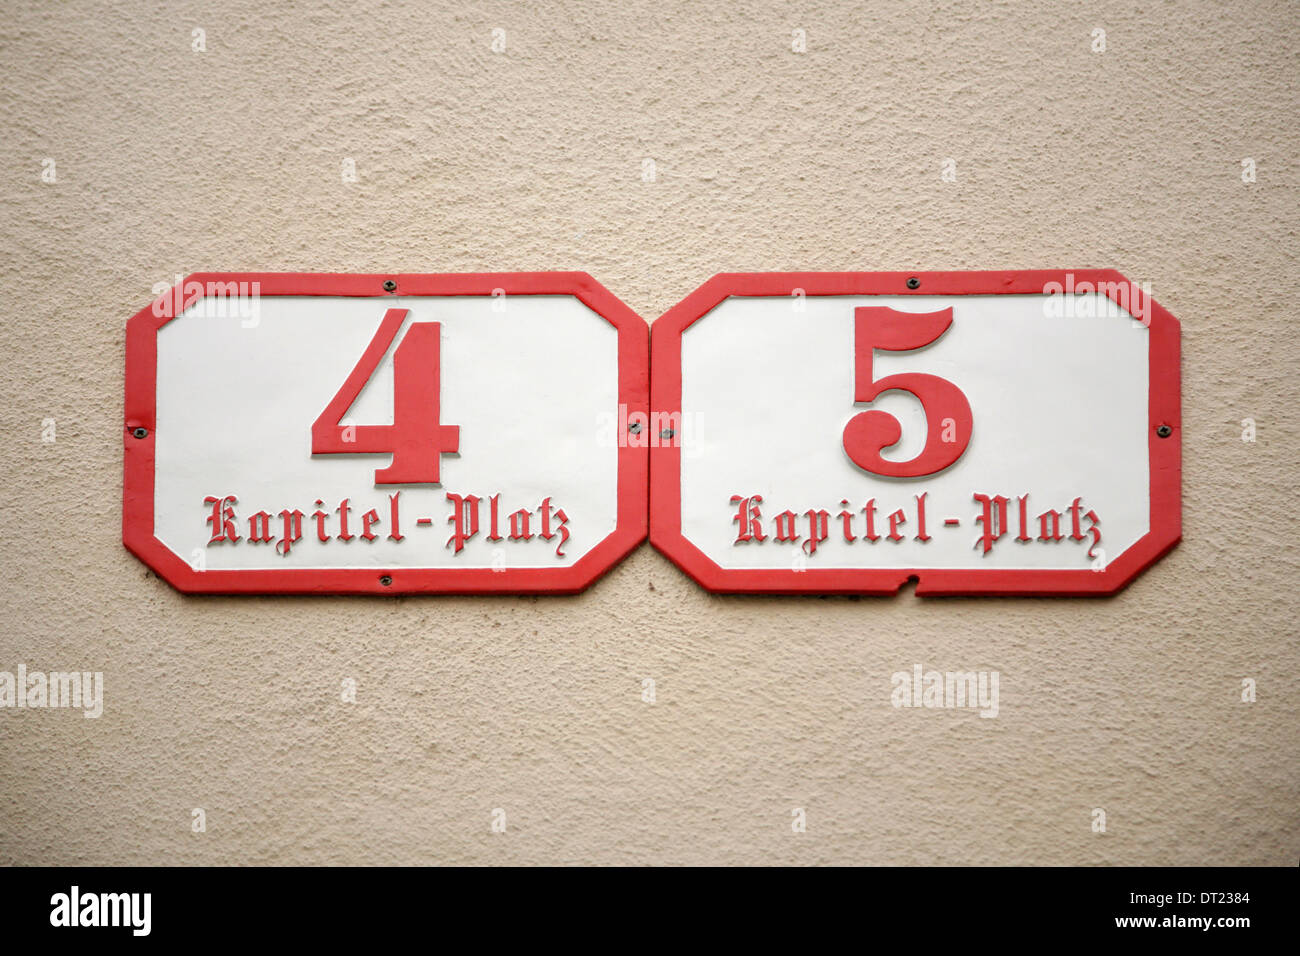 Numbers on house stock photos numbers on house stock images alamy house numbers on kapitel platz salzburg austria stock image malvernweather